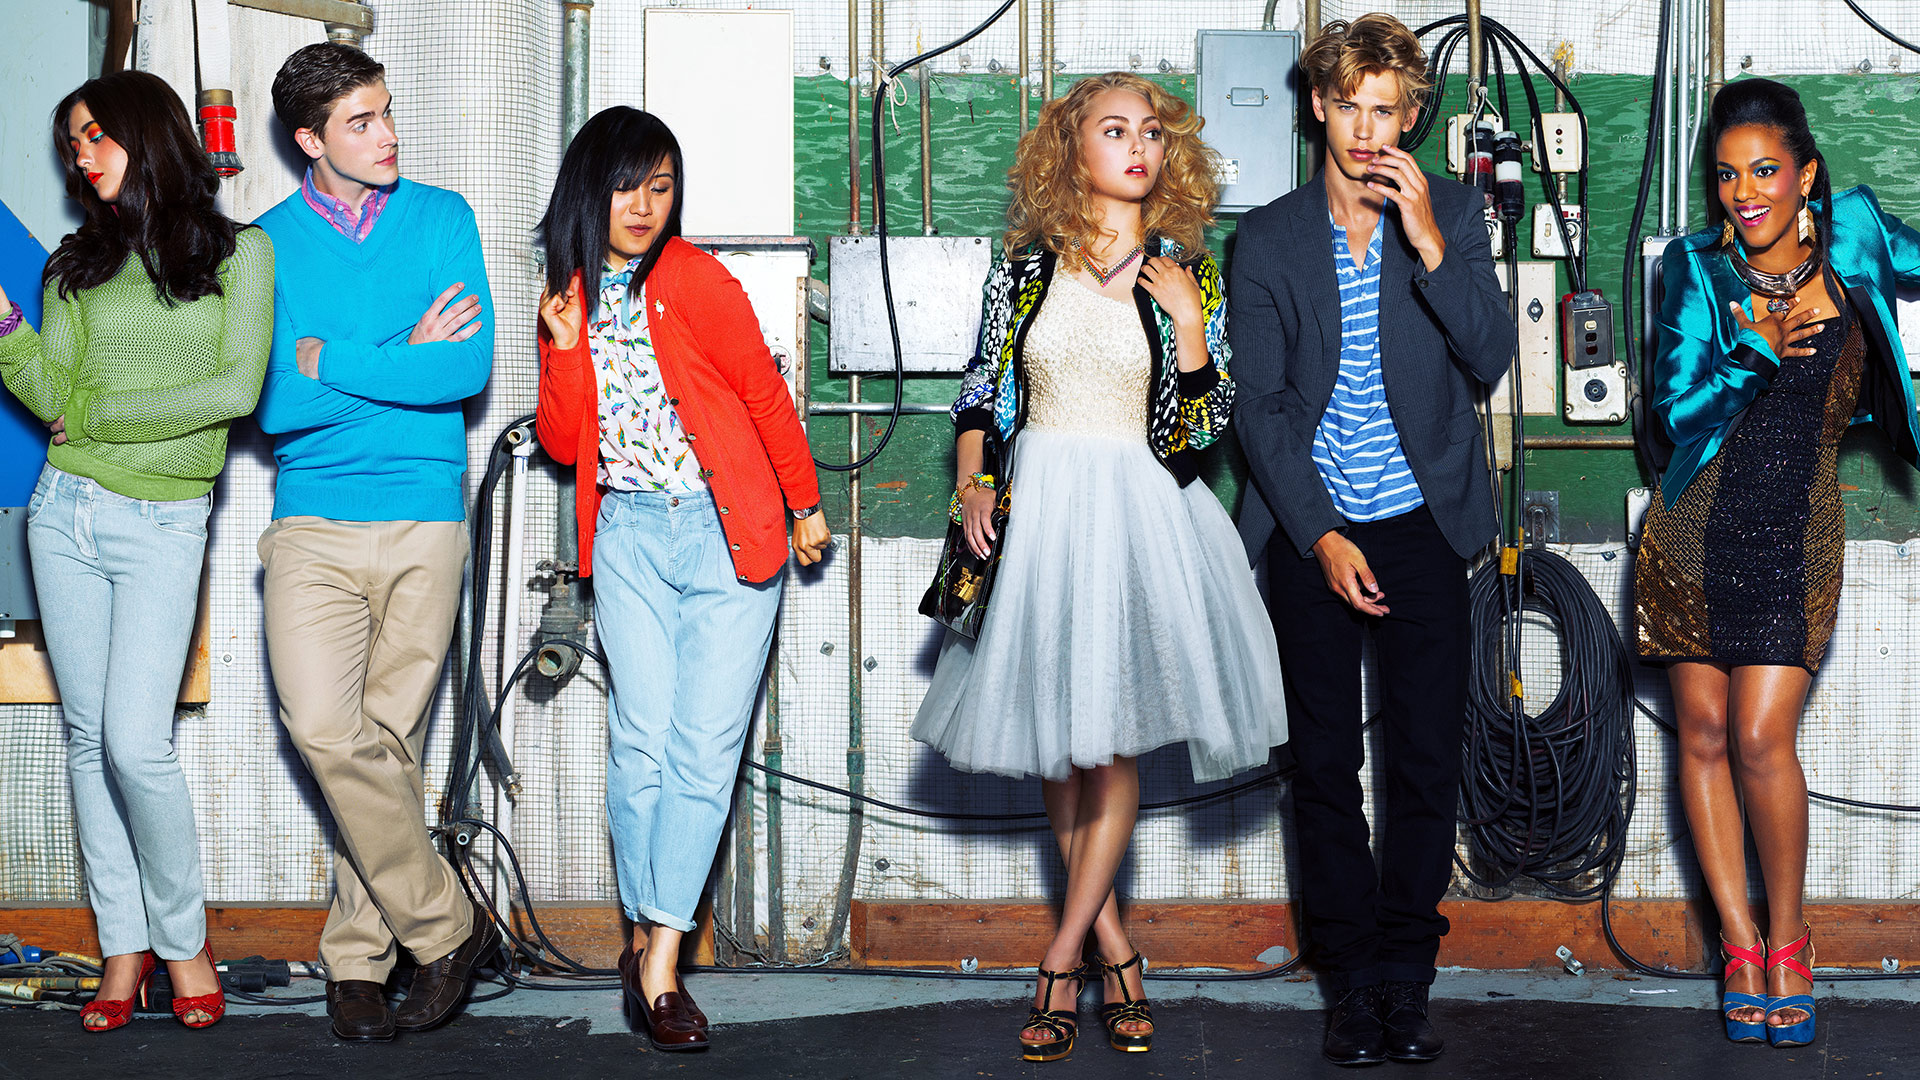 0204c5bddd4 TV Review  The Carrie Diaries - 1x13